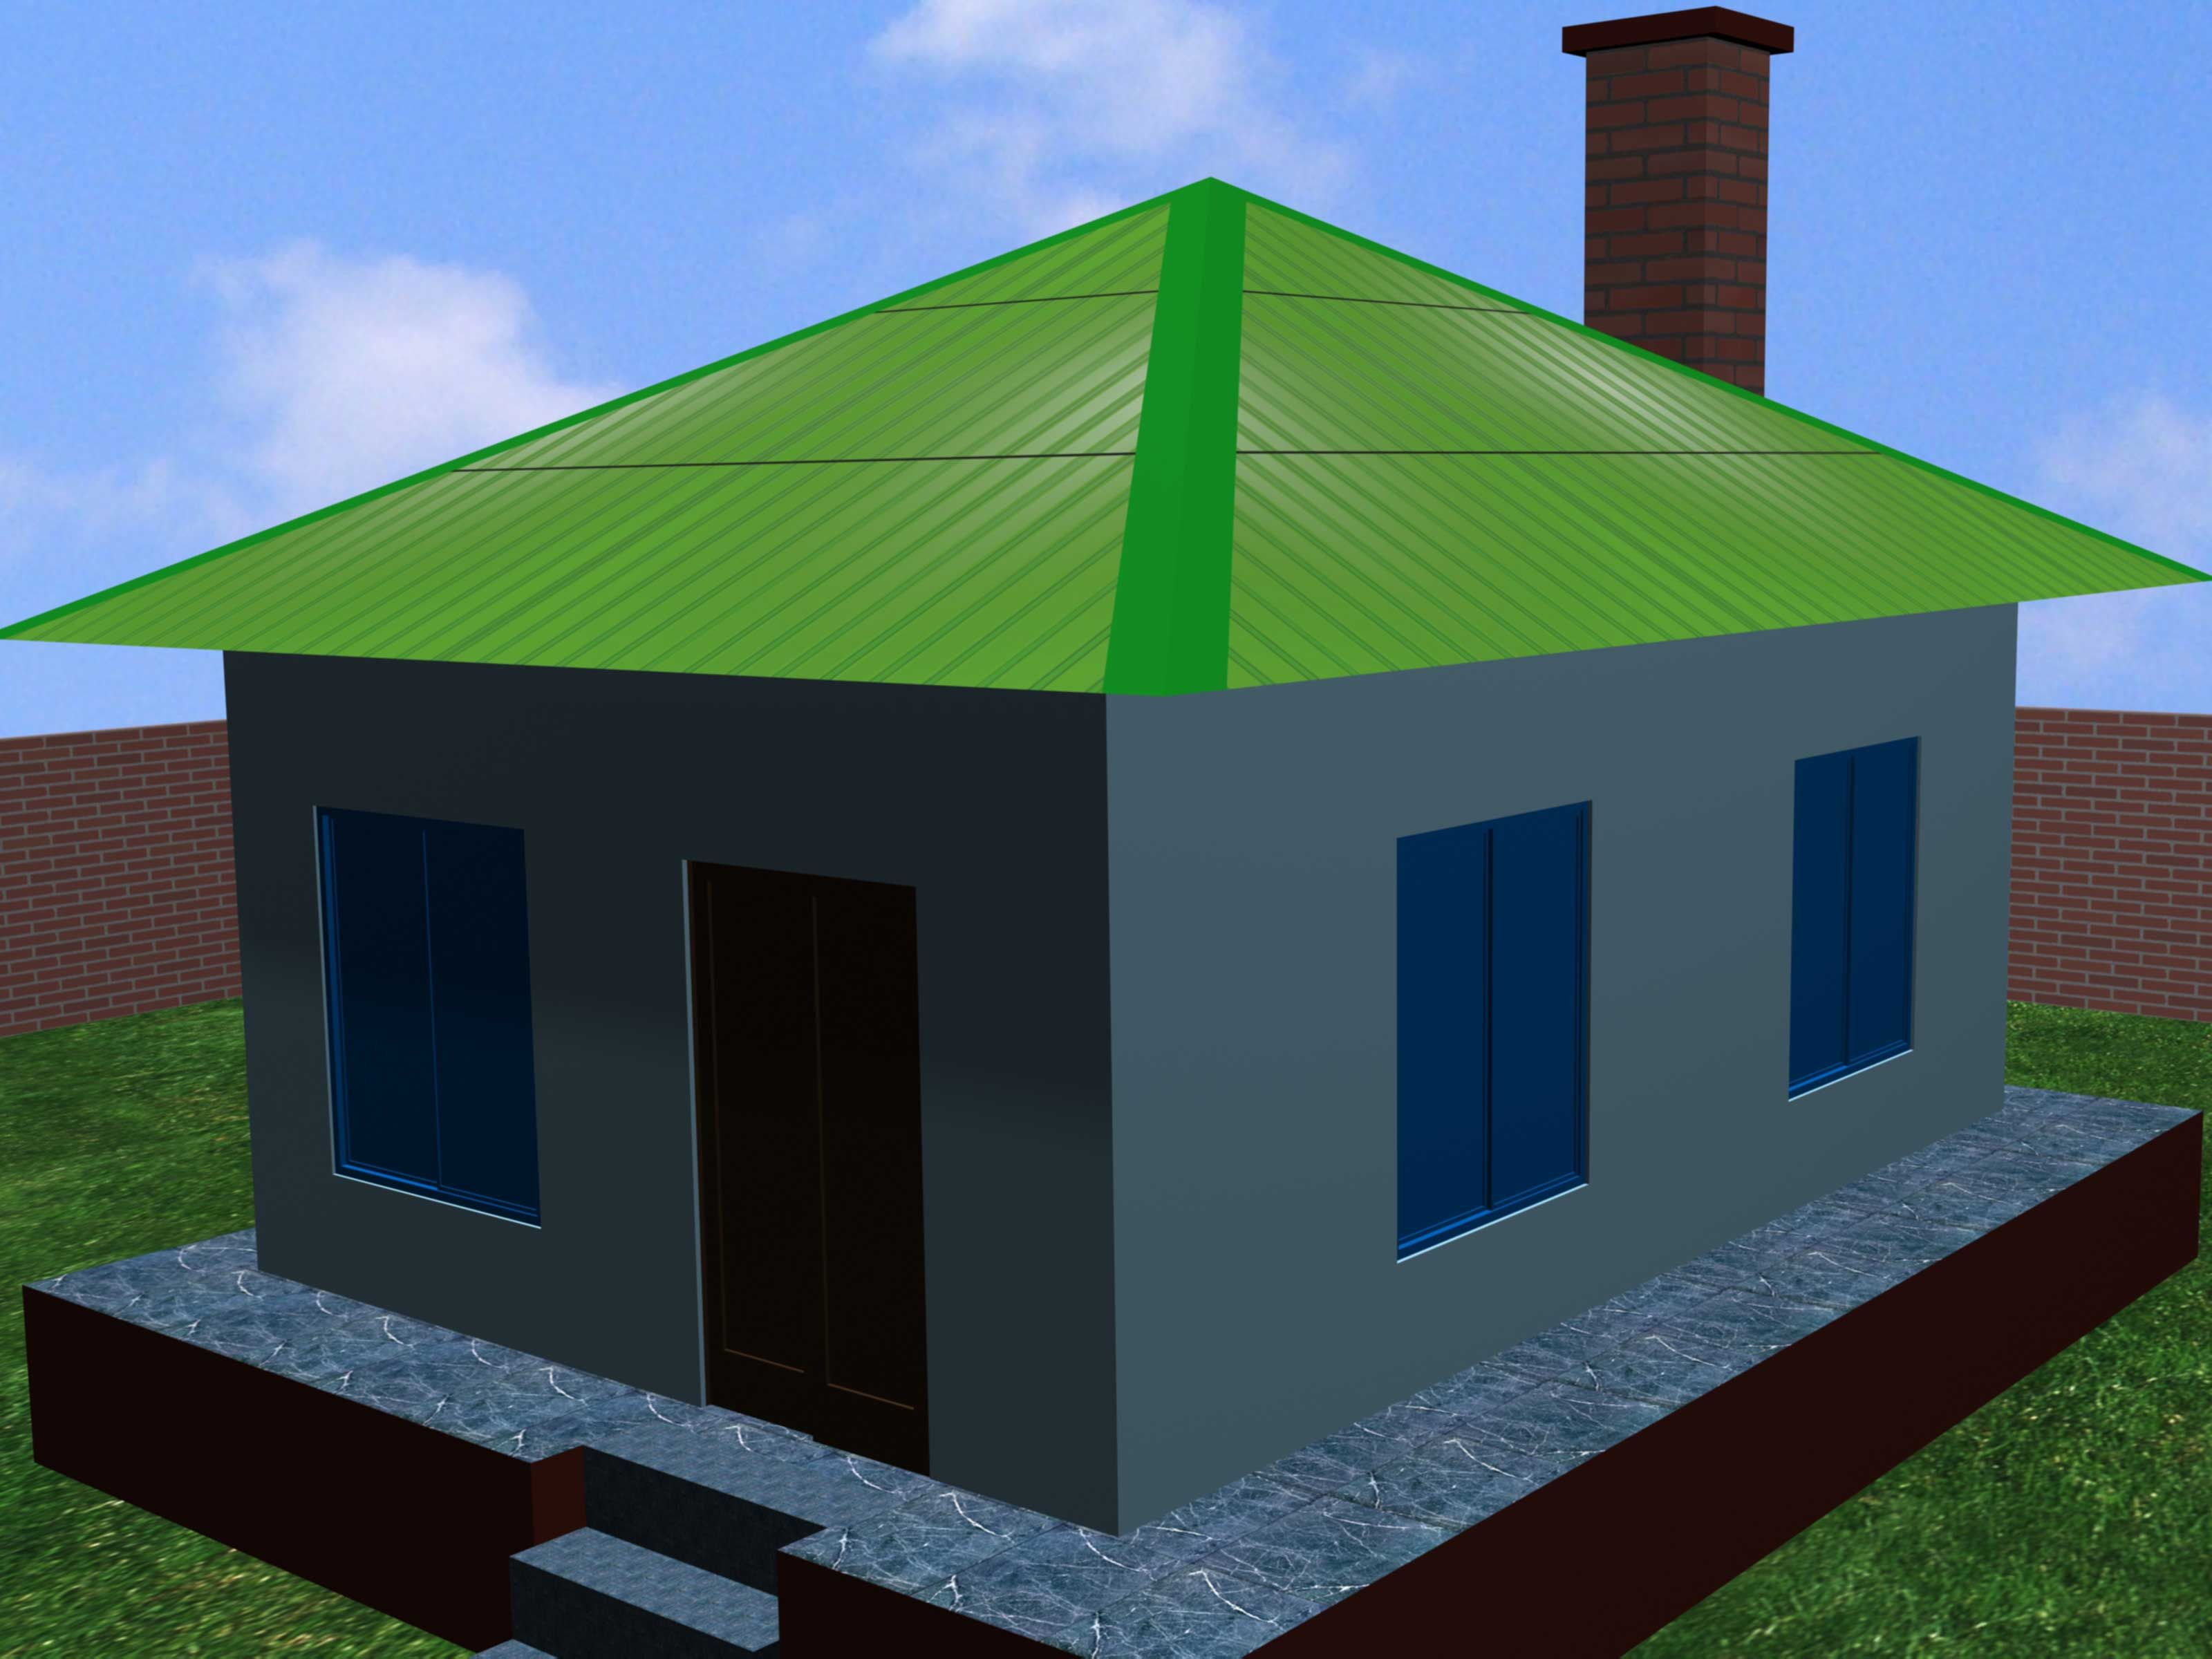 How To Install Metal Roofing Metal Roof Installation Metal Roof Fibreglass Roof